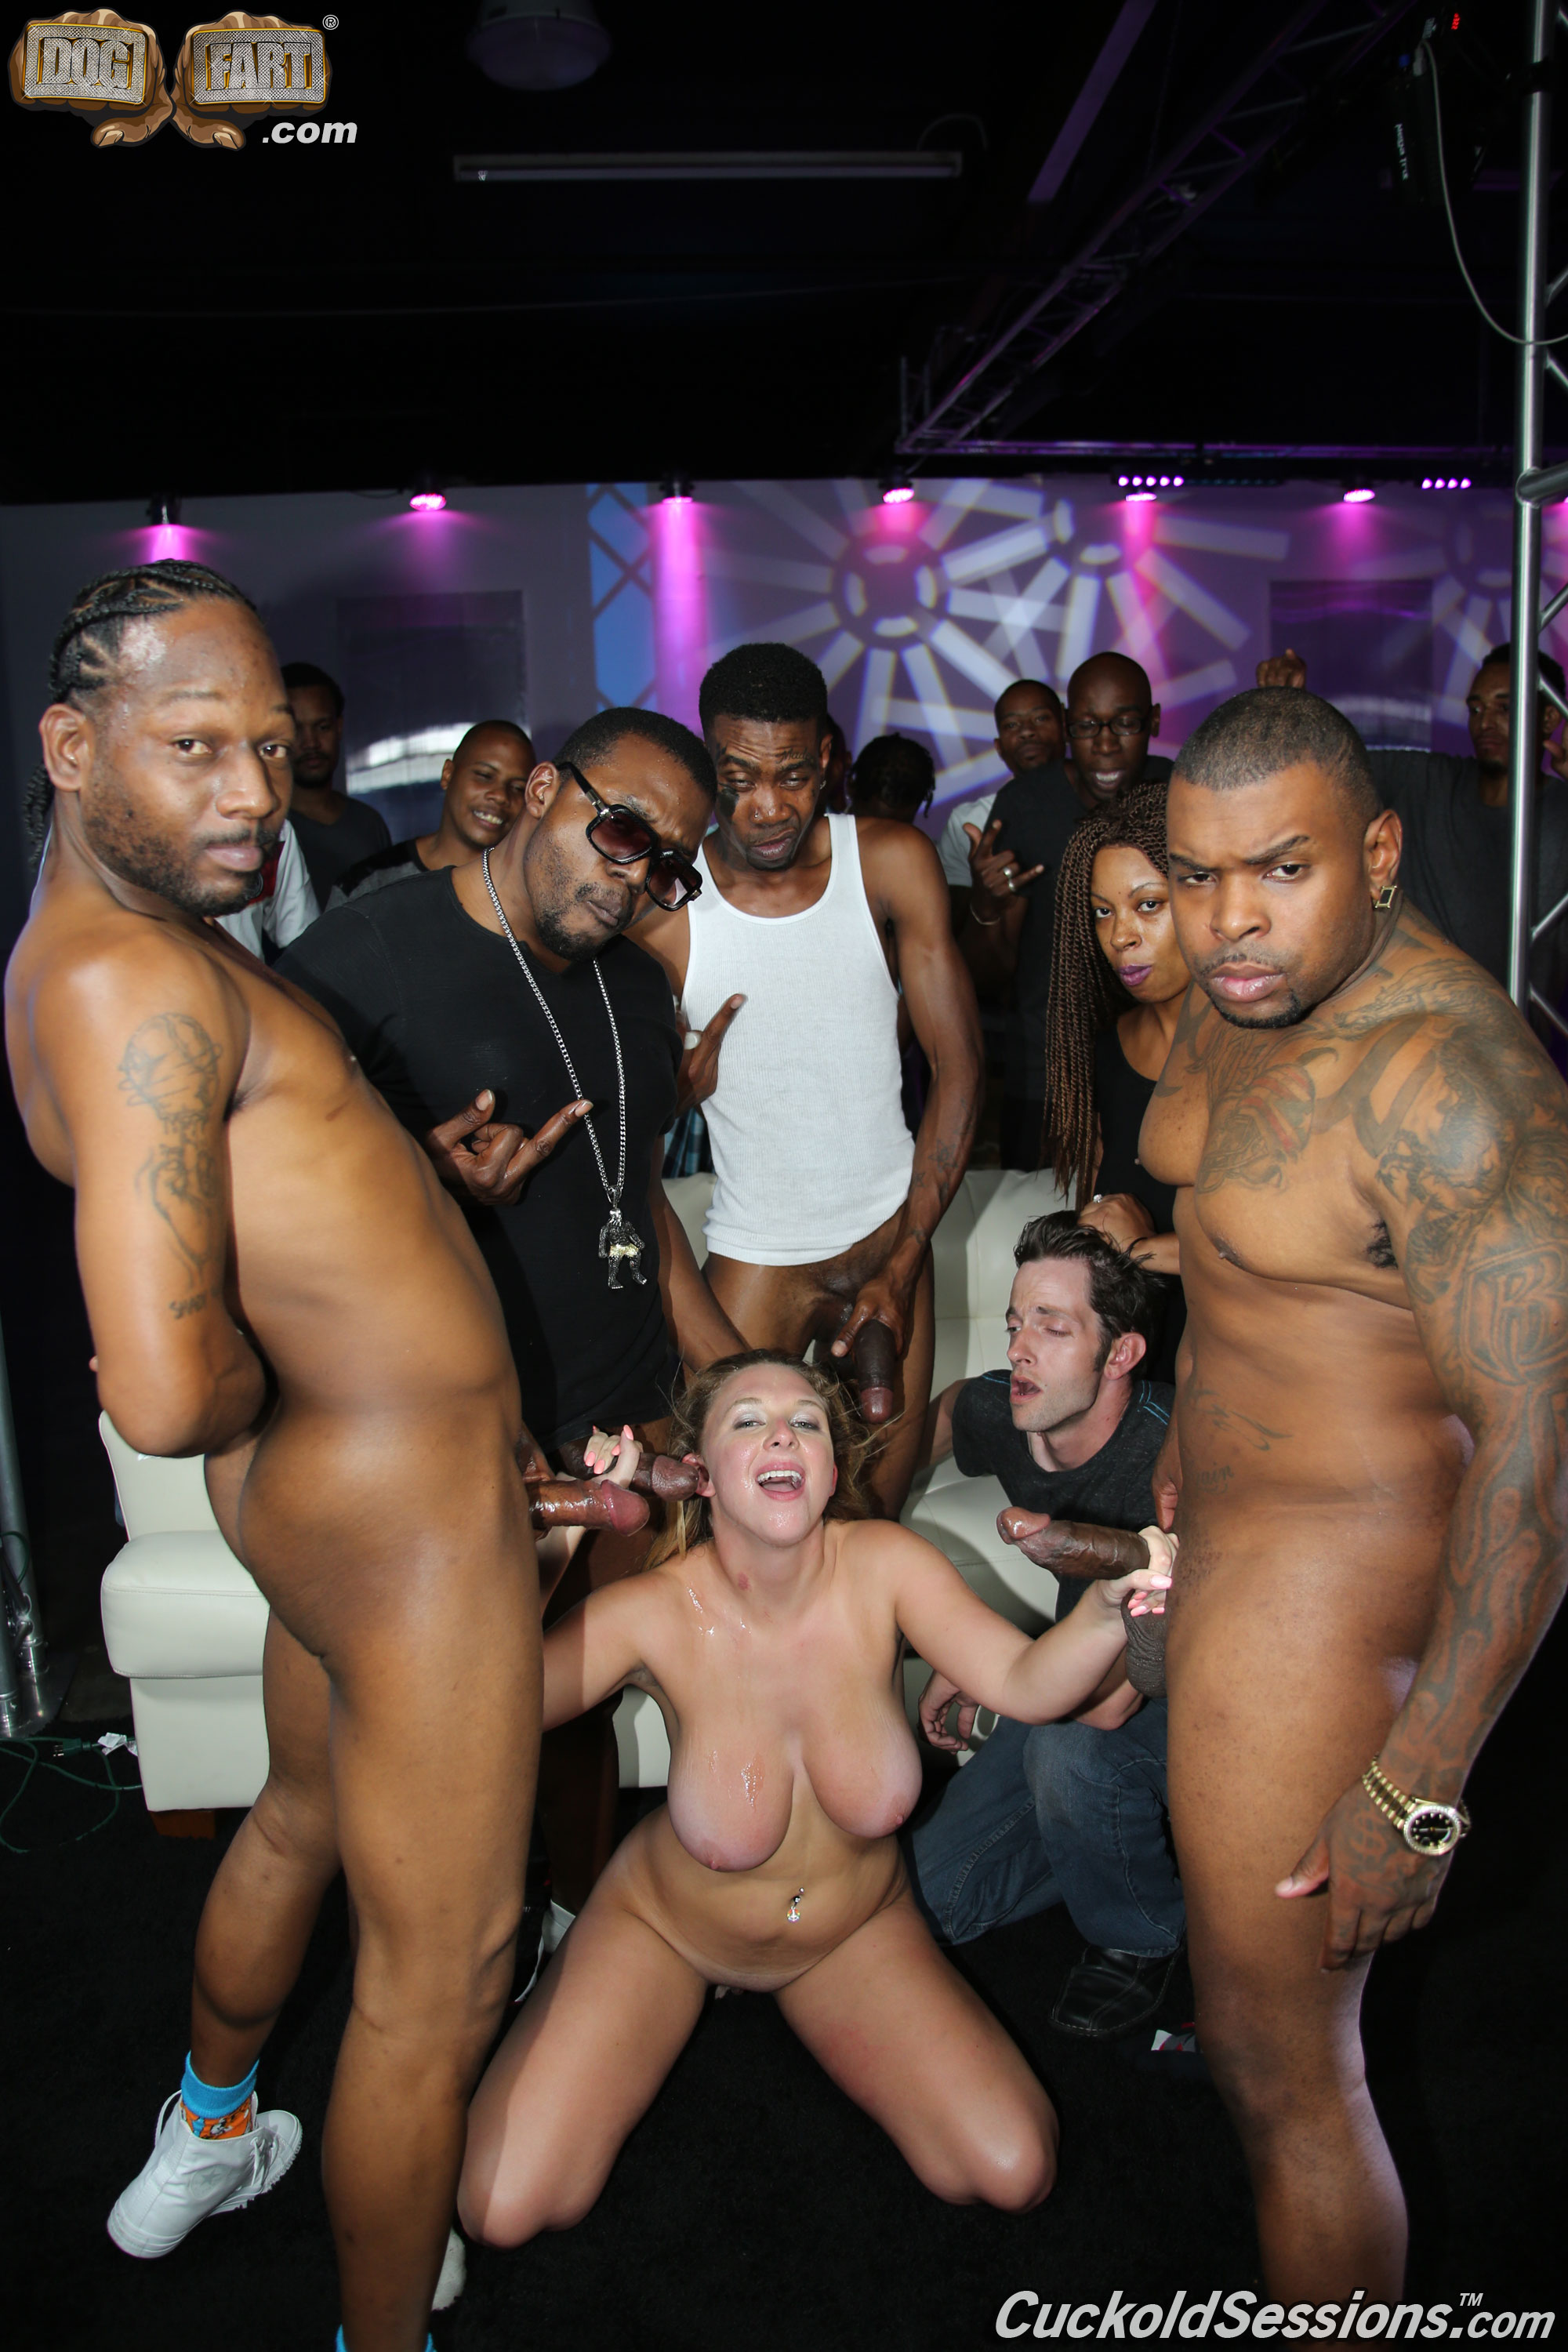 Cuckoldsessions Sex HD Pics Gallery Page 1